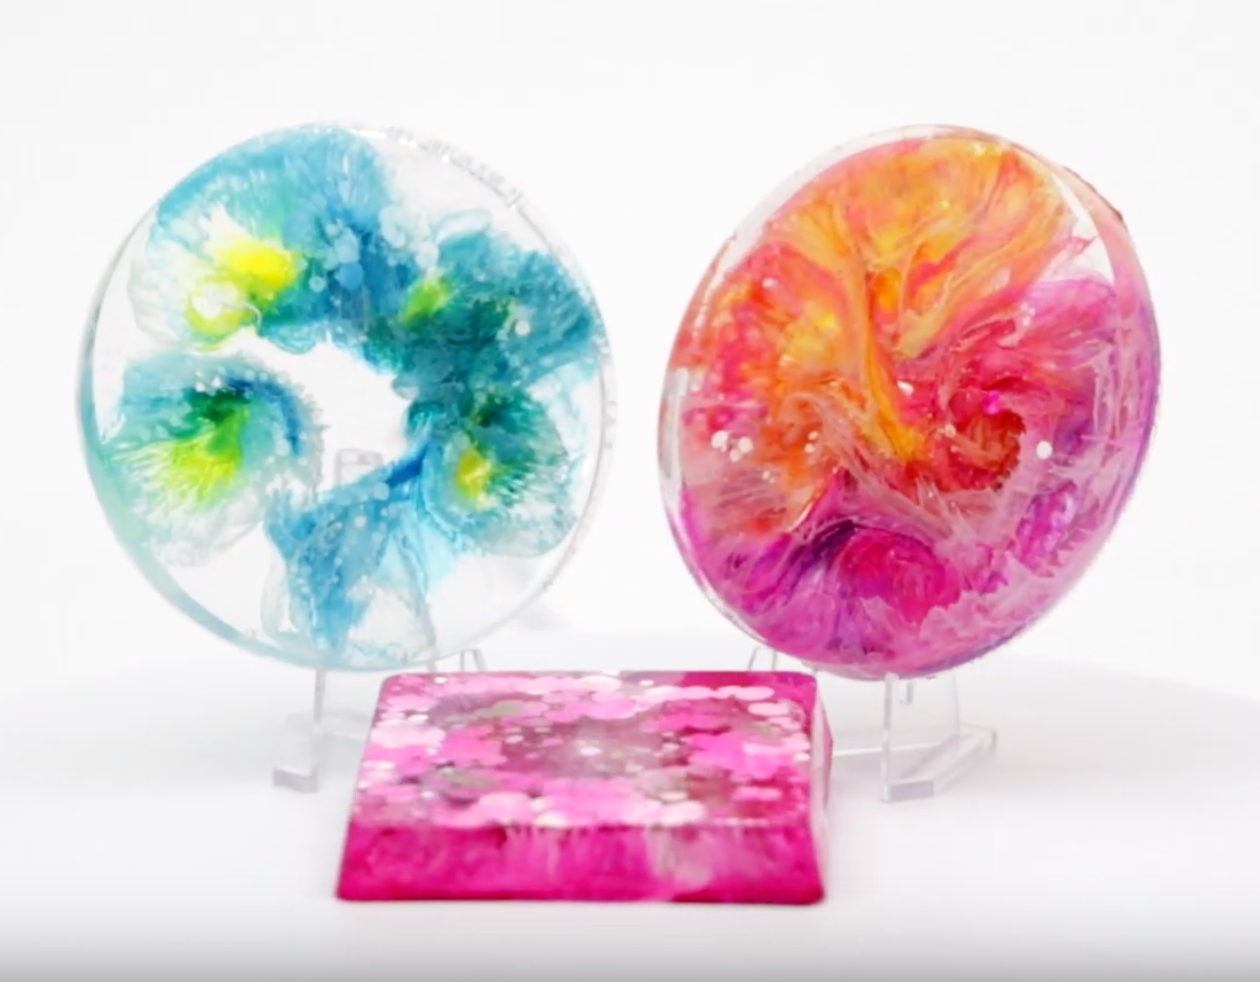 How To Make A Resin Coaster – ArtResin